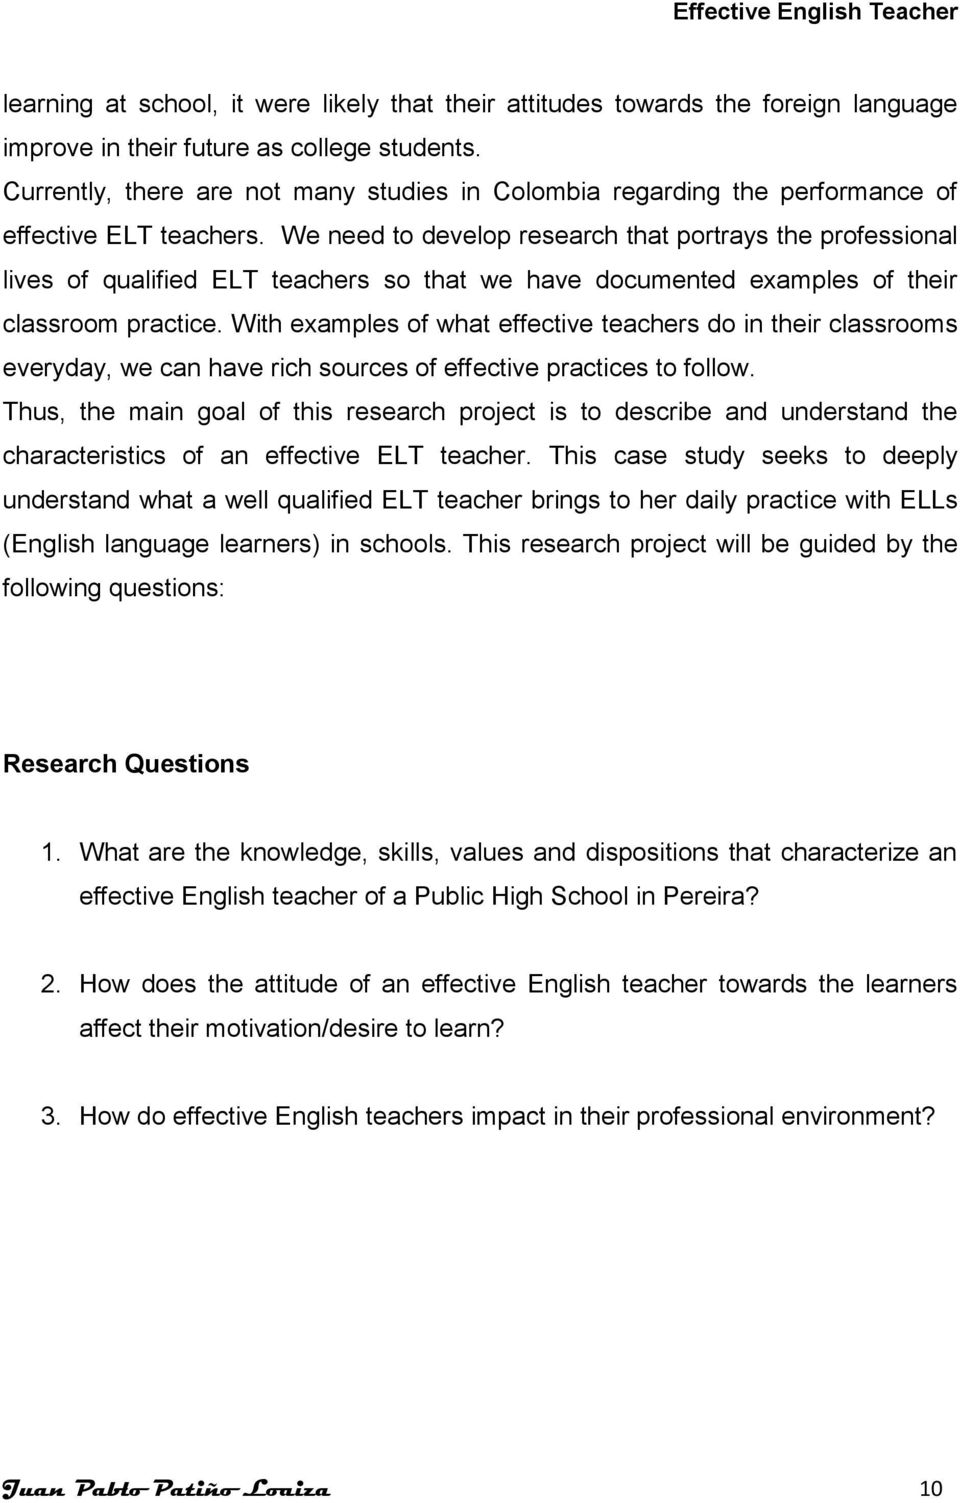 We need to develop research that portrays the professional lives of qualified ELT teachers so that we have documented examples of their classroom practice.